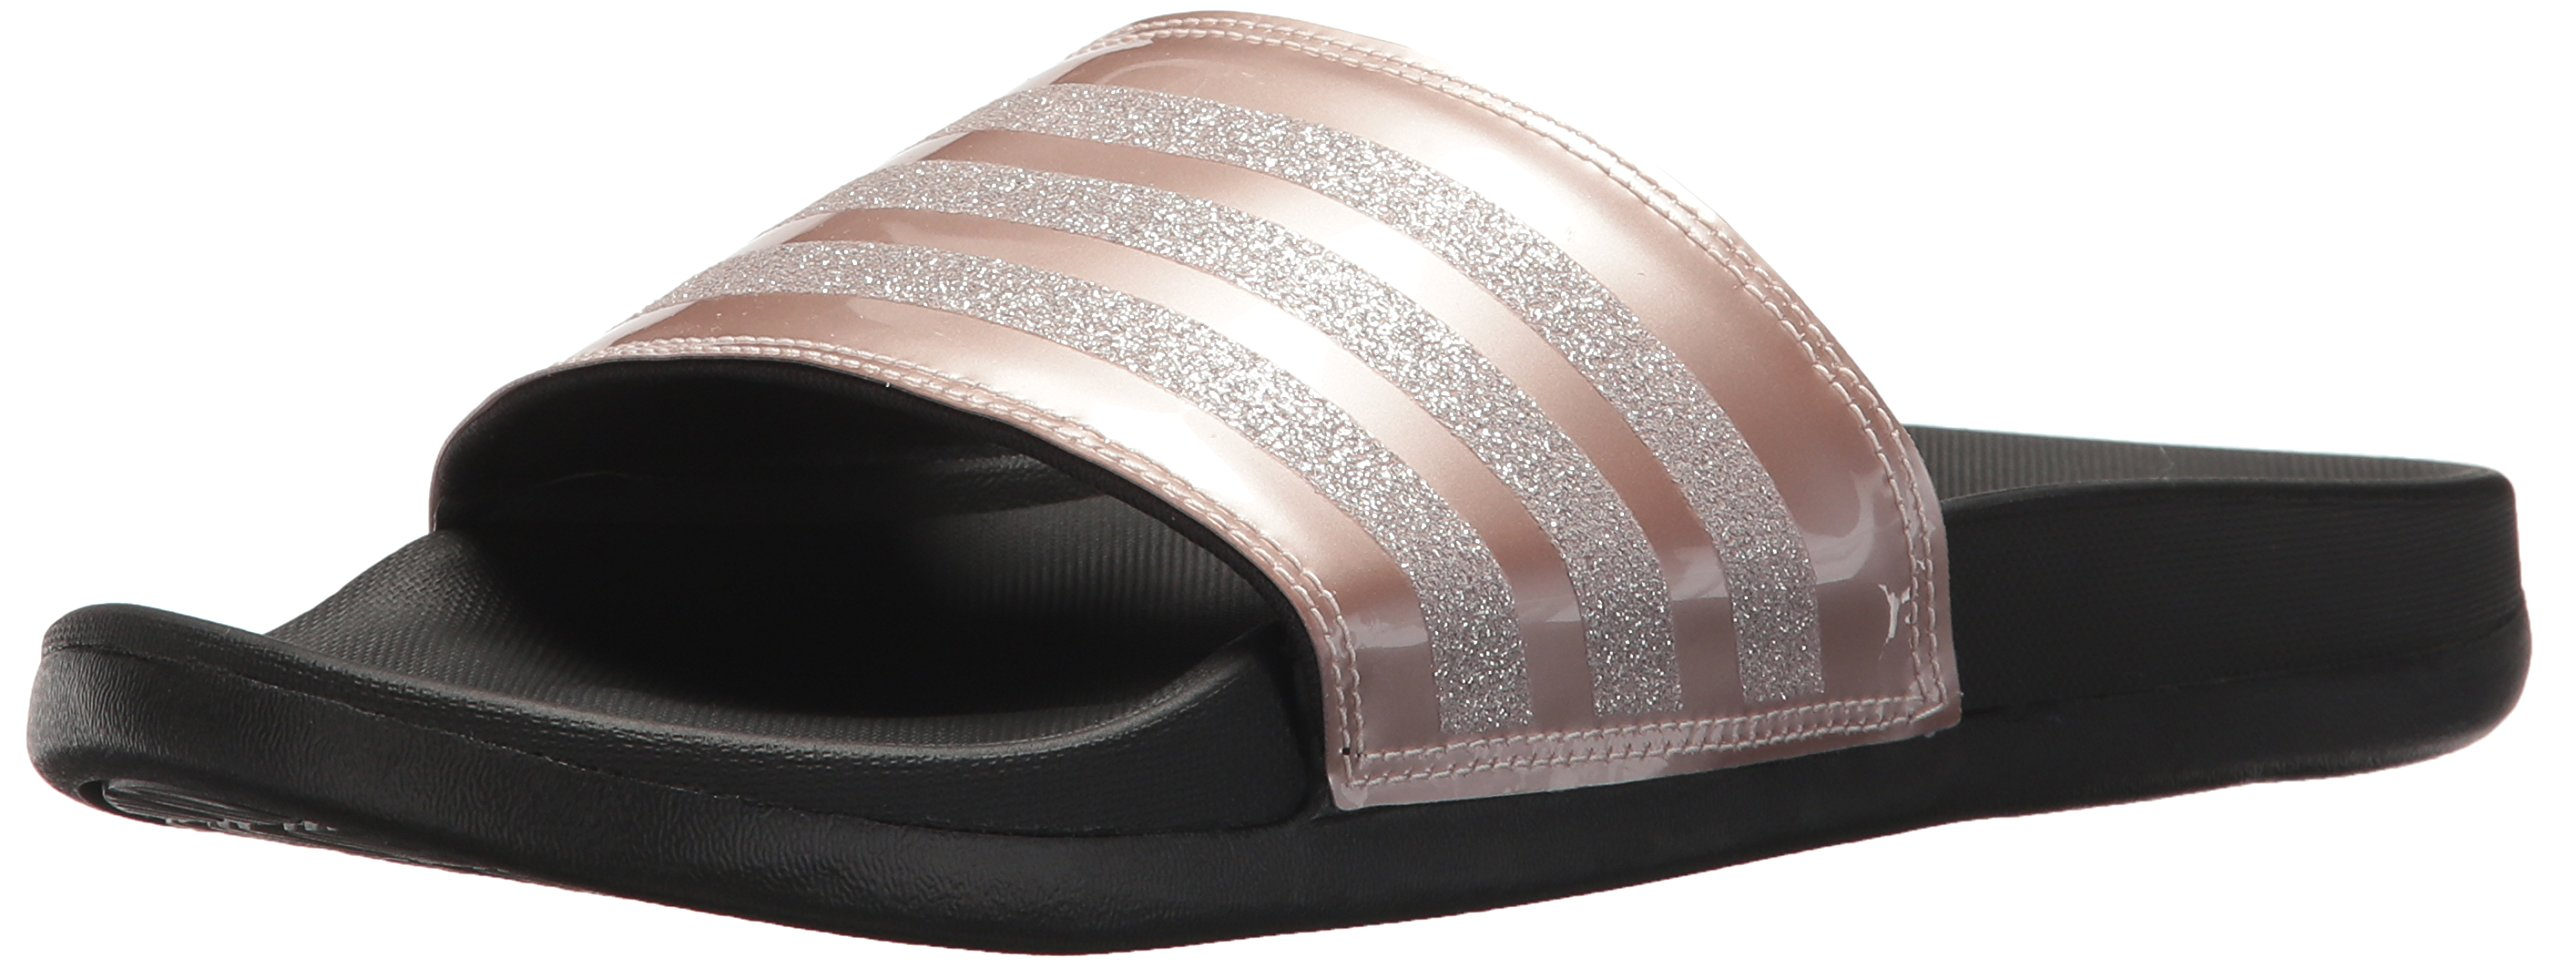 adidas Performance Women's Adilette CF+ Explorer W Sport Sandal, Vapour Grey Met, Vapour Grey Met.Fabric, Core Black, 7 M US